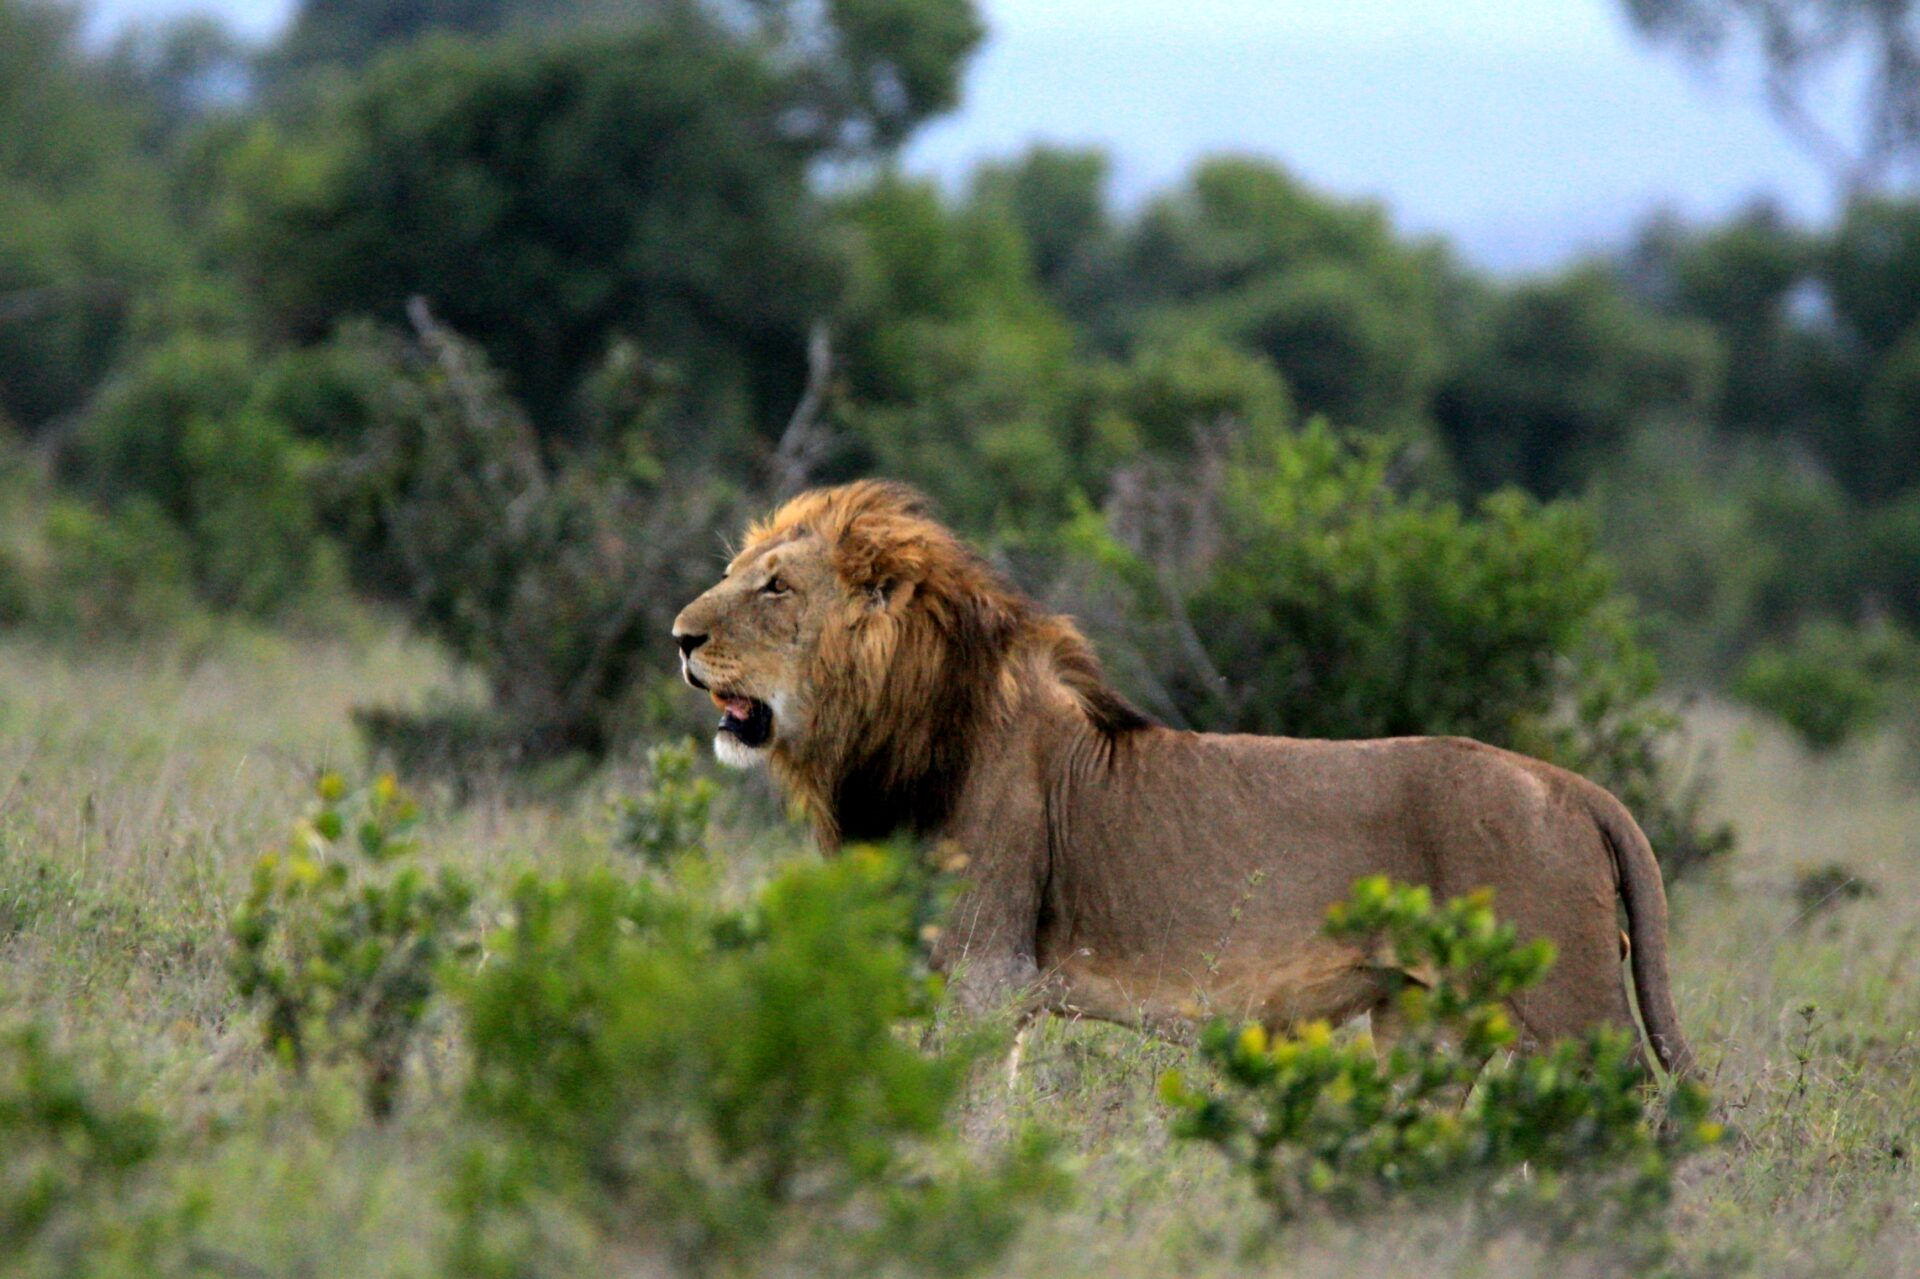 A male Lion in the Savanna